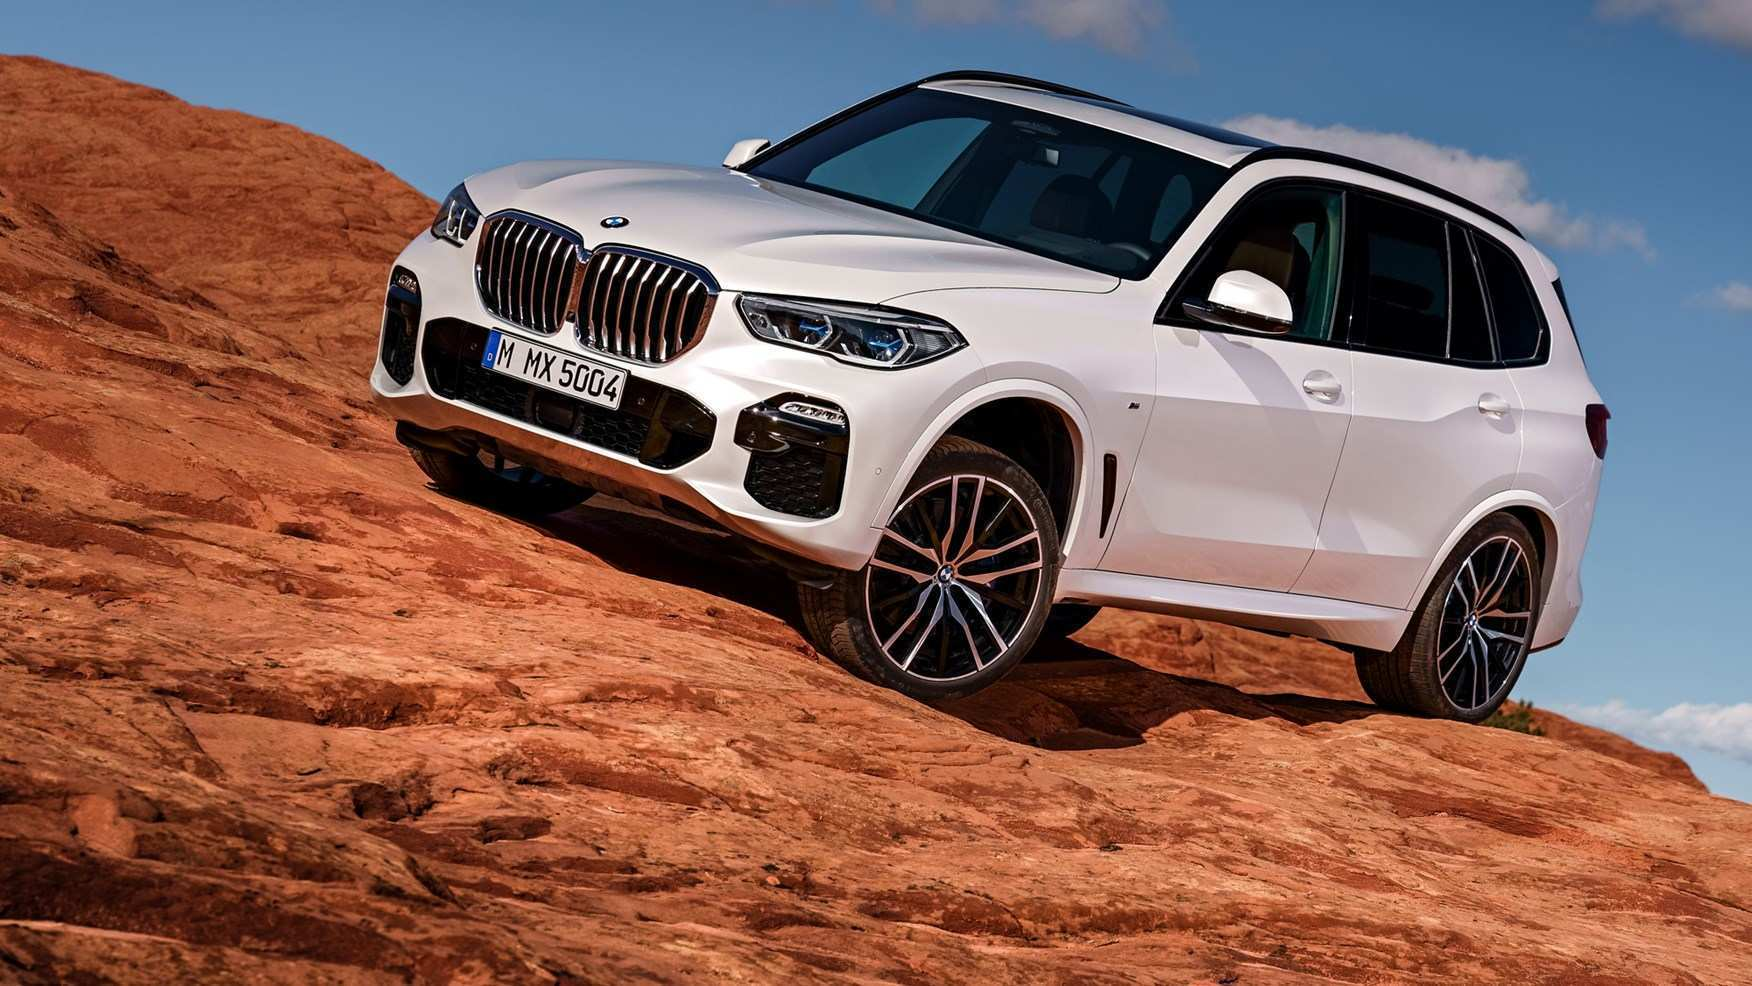 49 Concept of Next Gen 2020 BMW X5 Suv Price with Next Gen 2020 BMW X5 Suv